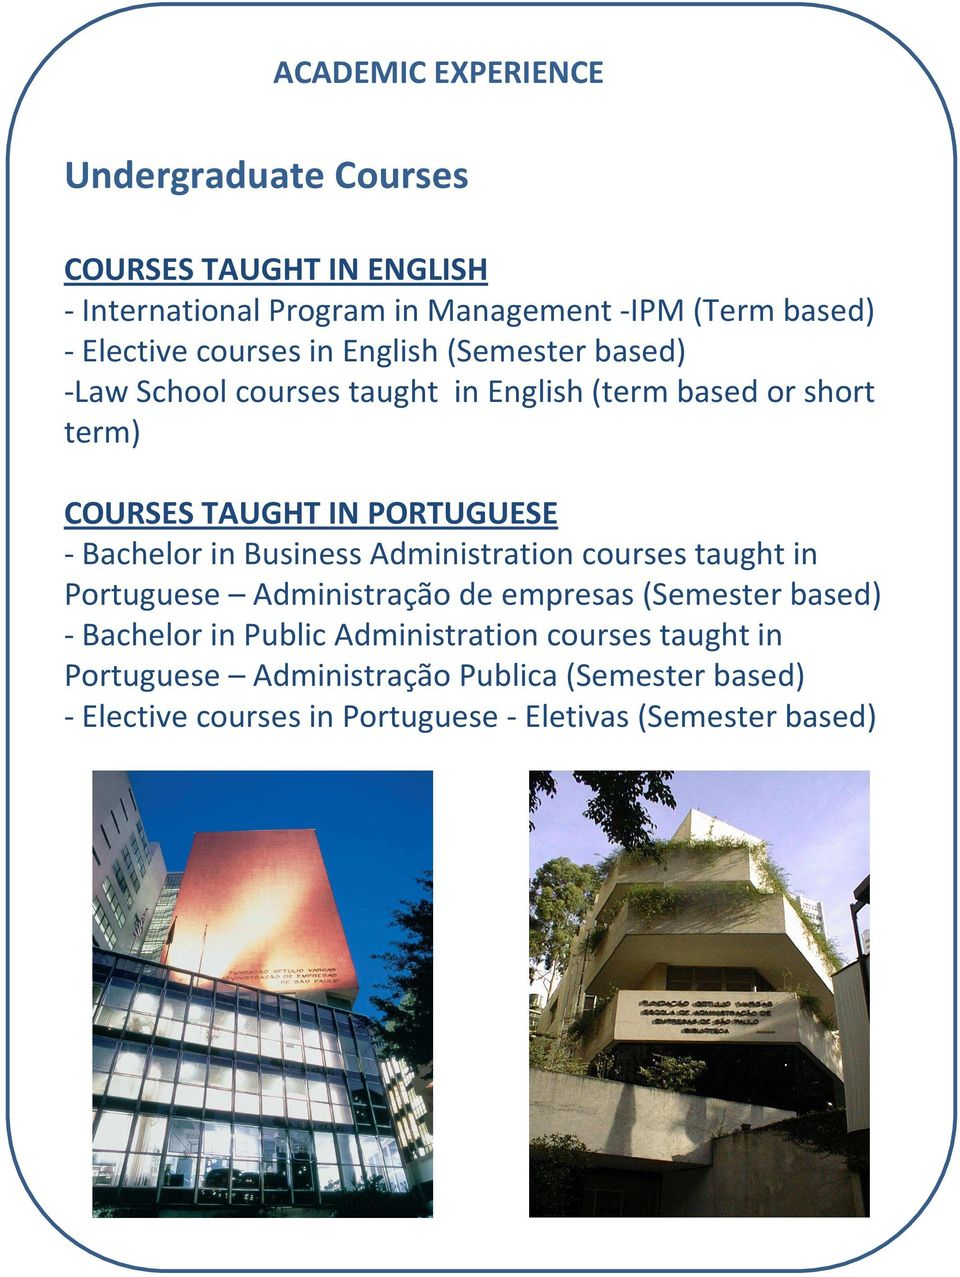 PORTUGUESE -Bachelor in Business Administration courses taught in Portuguese Administração de empresas(semester based) -Bachelor in